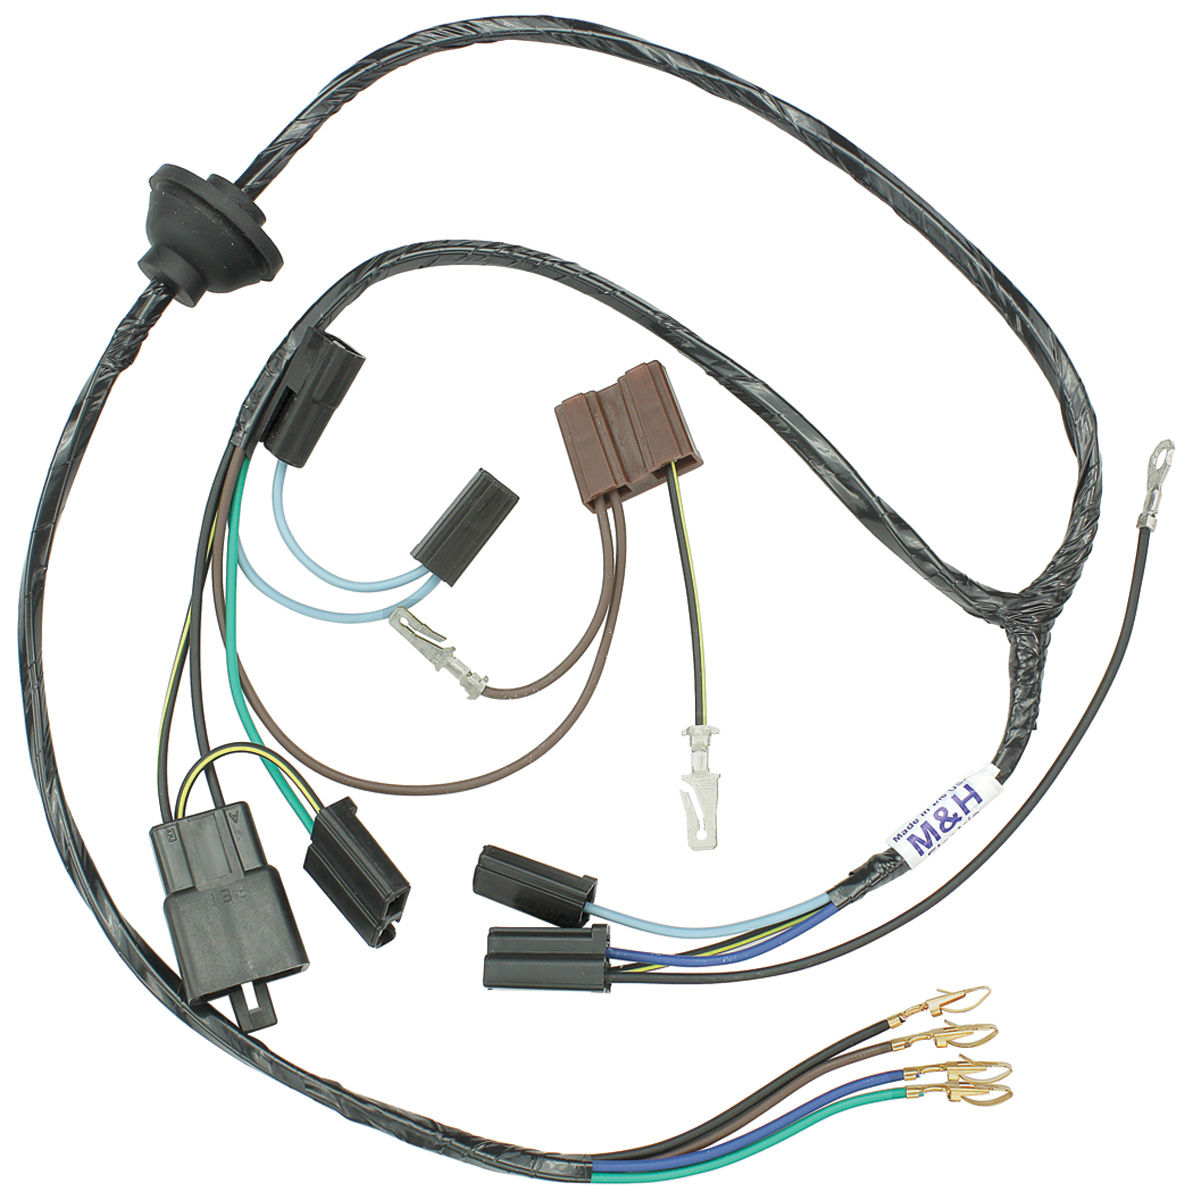 28255 lrg m&h 1970 chevelle wiper motor harness electro tip demand wipers 1970 chevelle engine wiring harness at n-0.co